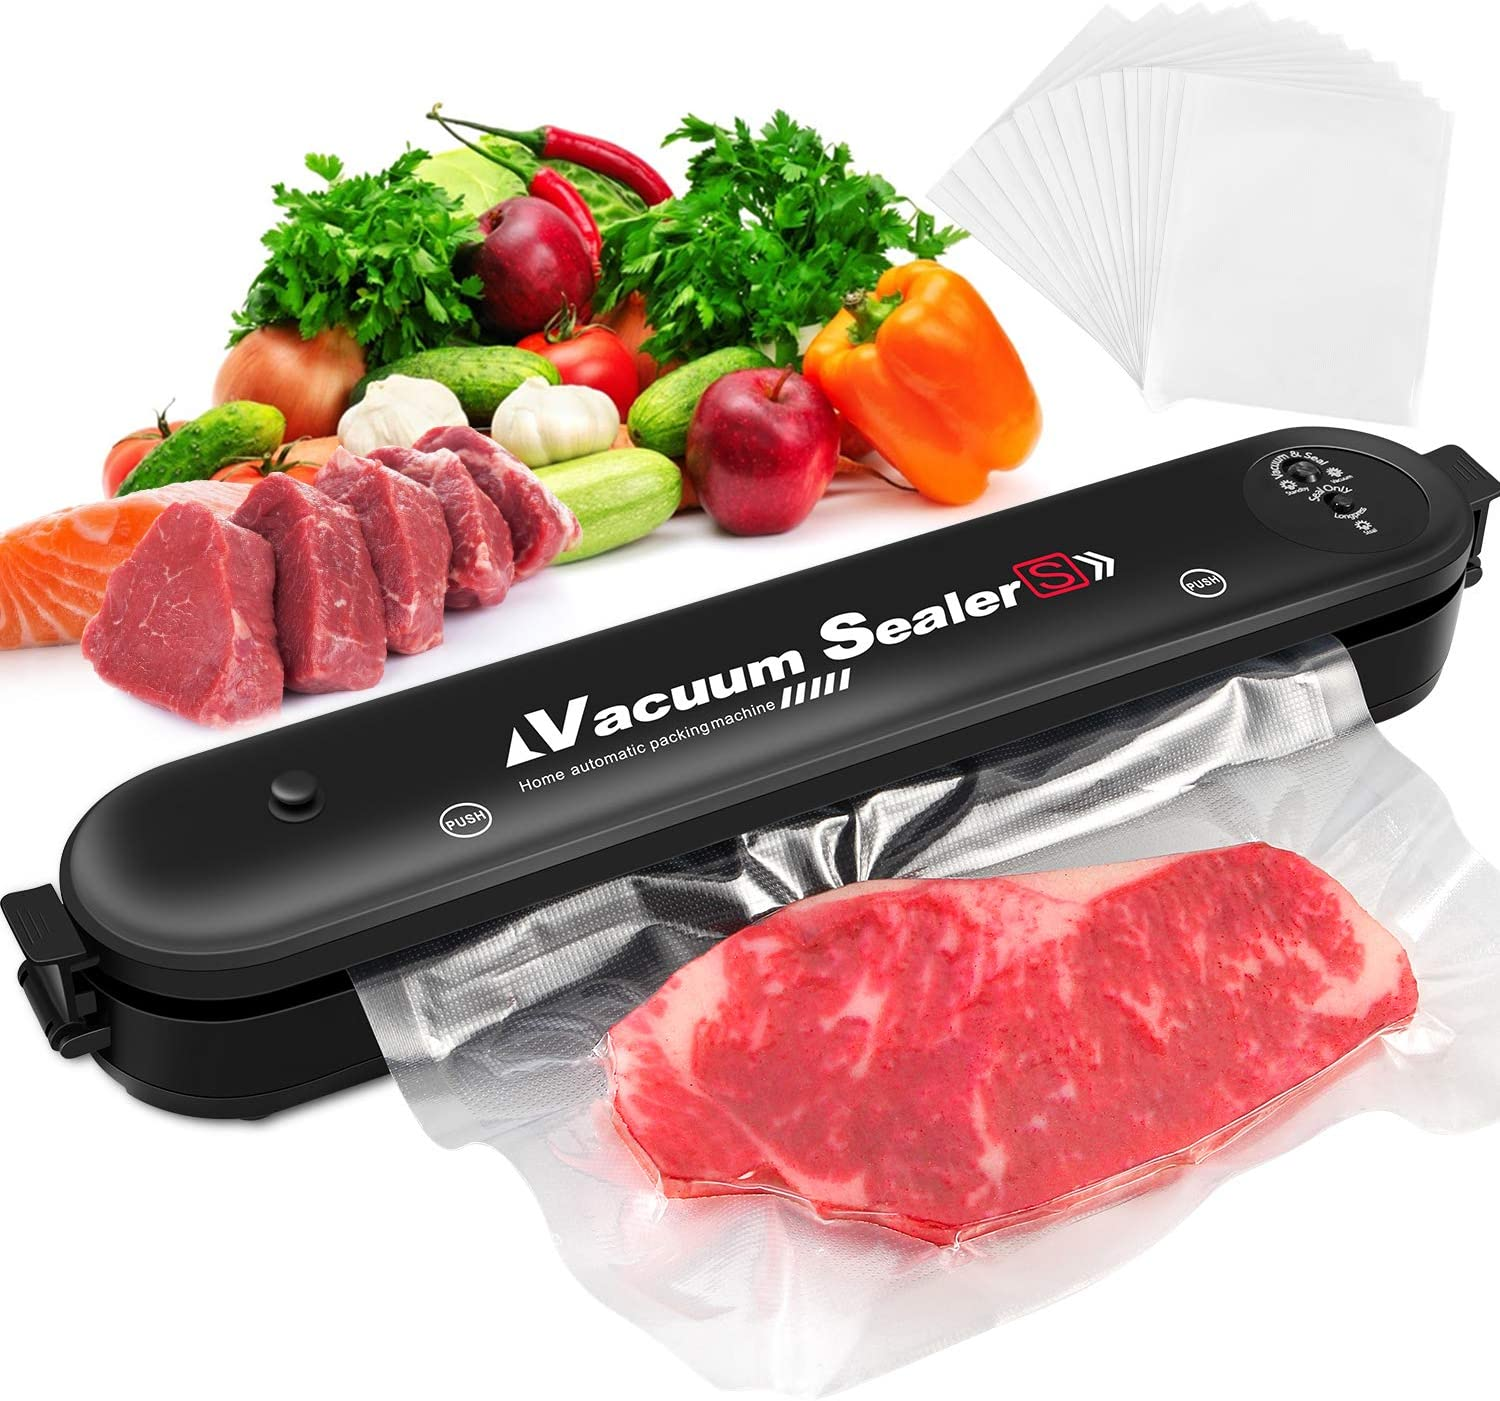 Viajero Vacuum Sealer Machine, Automatic Food Savers Machine for Food Preservation with Starter Kit, Compact Design, Easy to Clean, Led Indicator Lights, Dry & Moist Food Modes, 15 Pcs Bags include